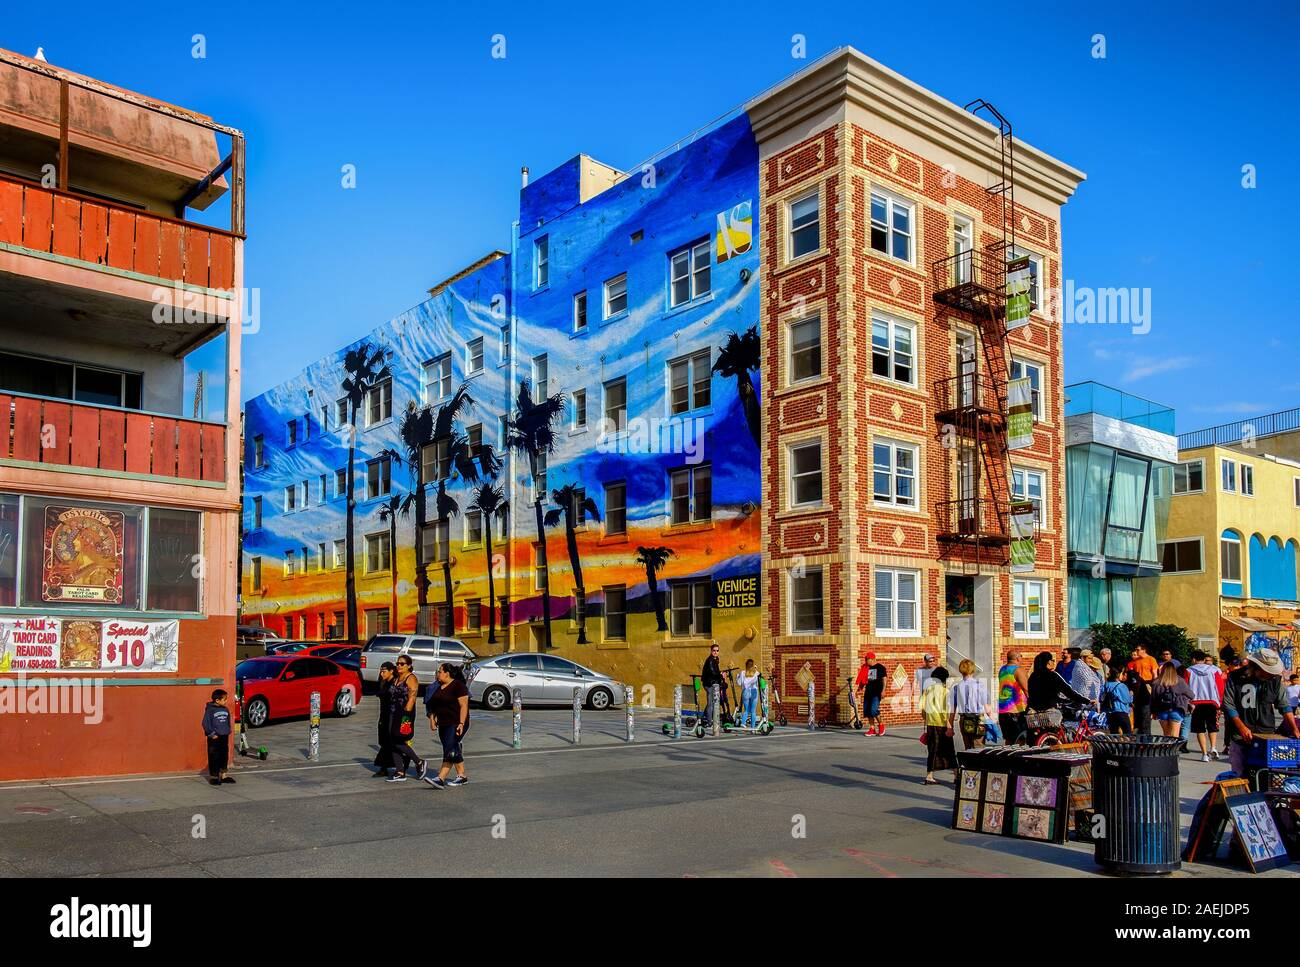 Los Angeles California March 2019 Urban Scene In Front Of